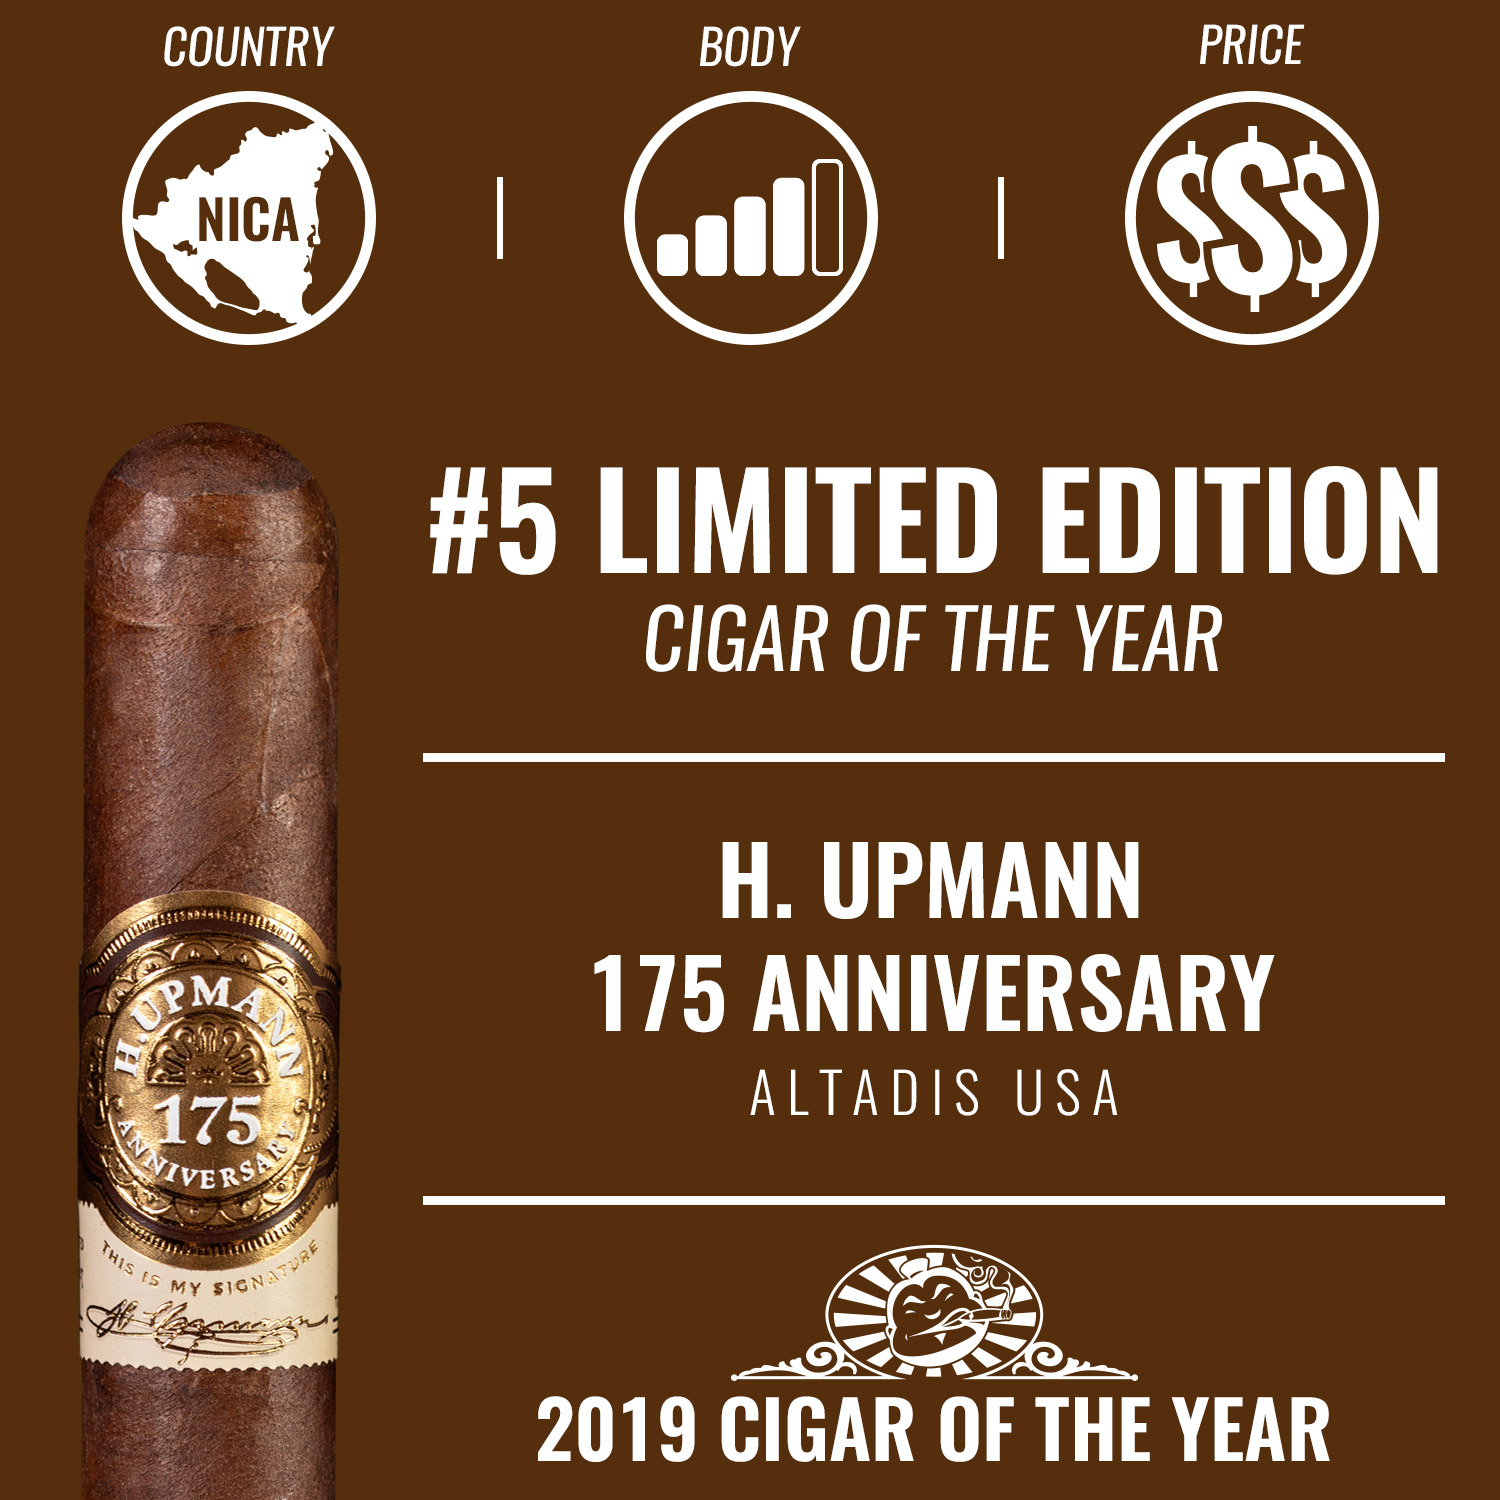 H. Upmann 175 Anniversary No. 5 Limited Edition Cigar of the Year 2019